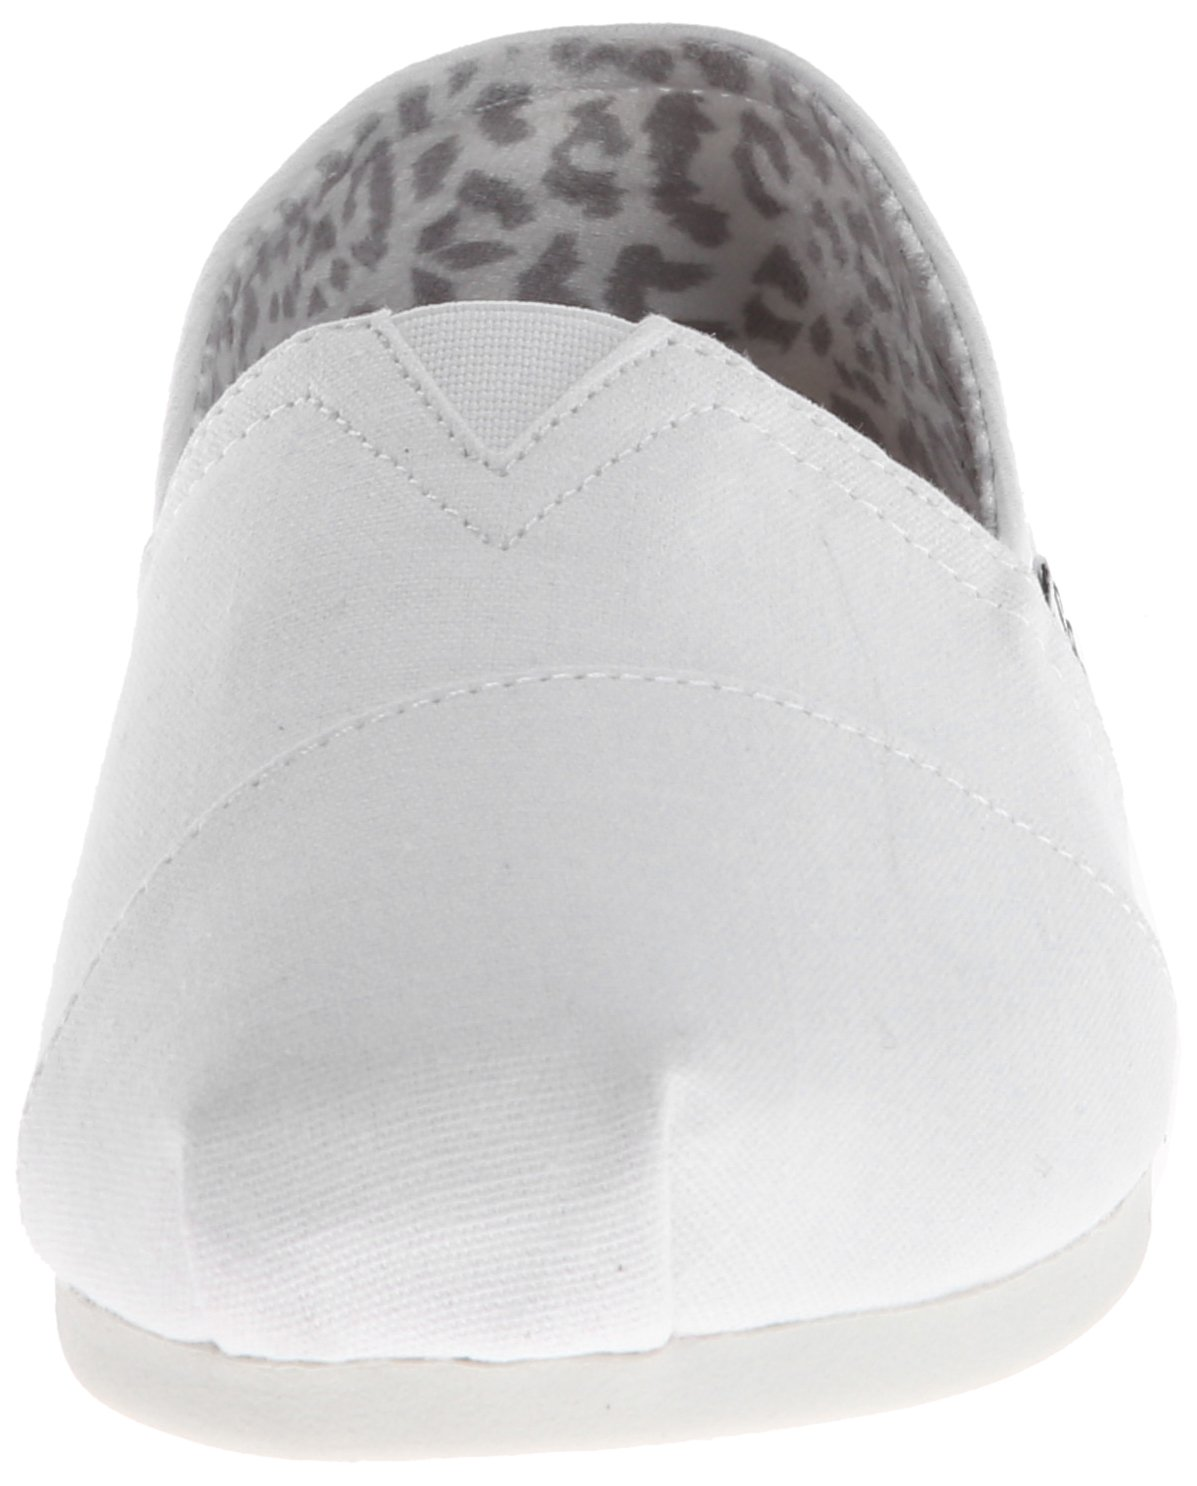 Love Bobs From Women's white Plush And Us Peace Skechers uF135cTlKJ